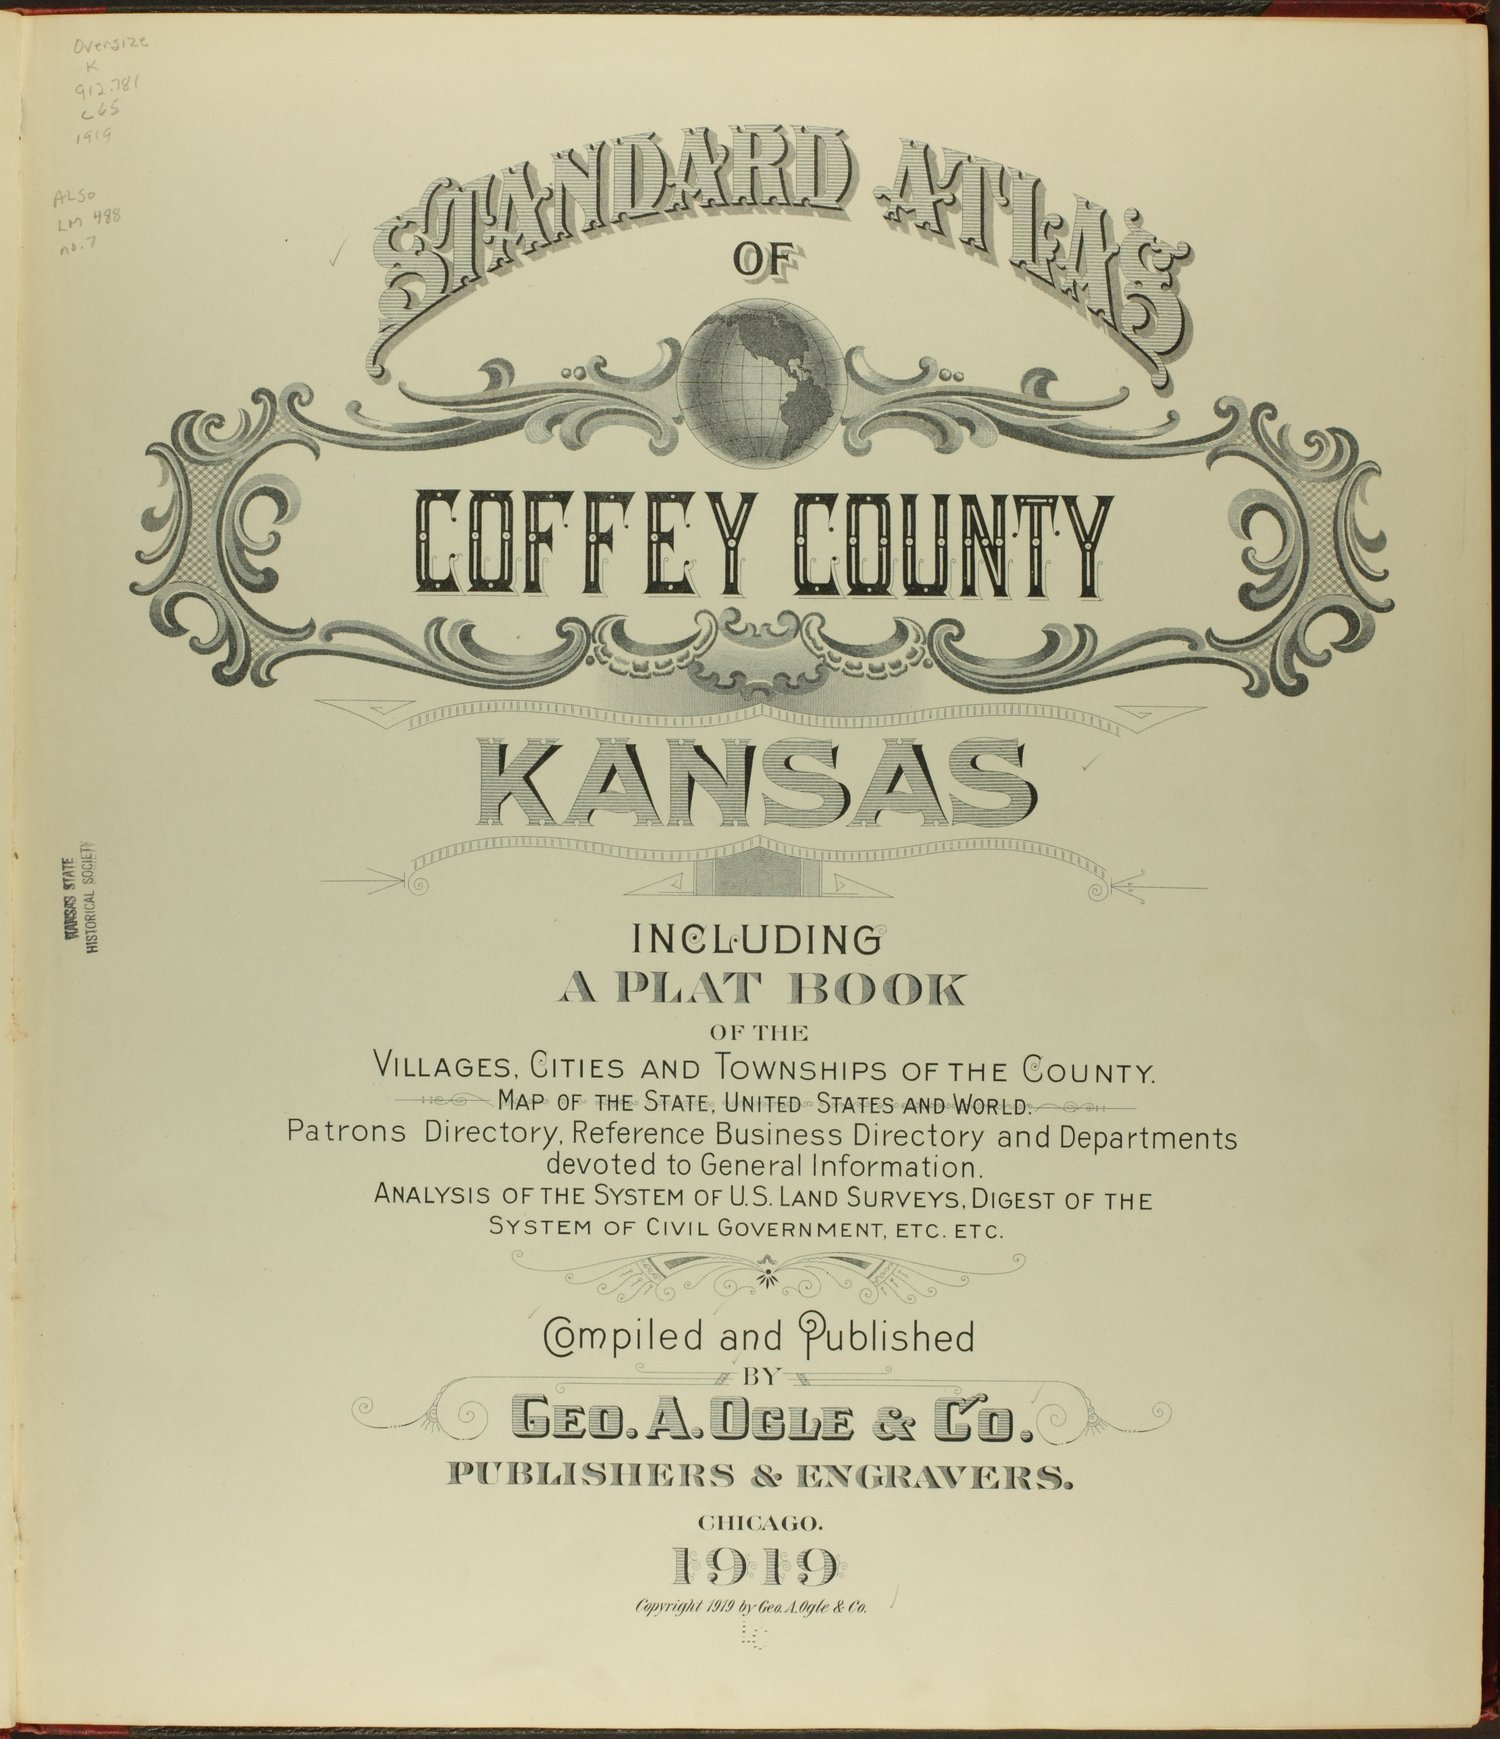 Standard atlas of Coffey County, Kansas - Title Page